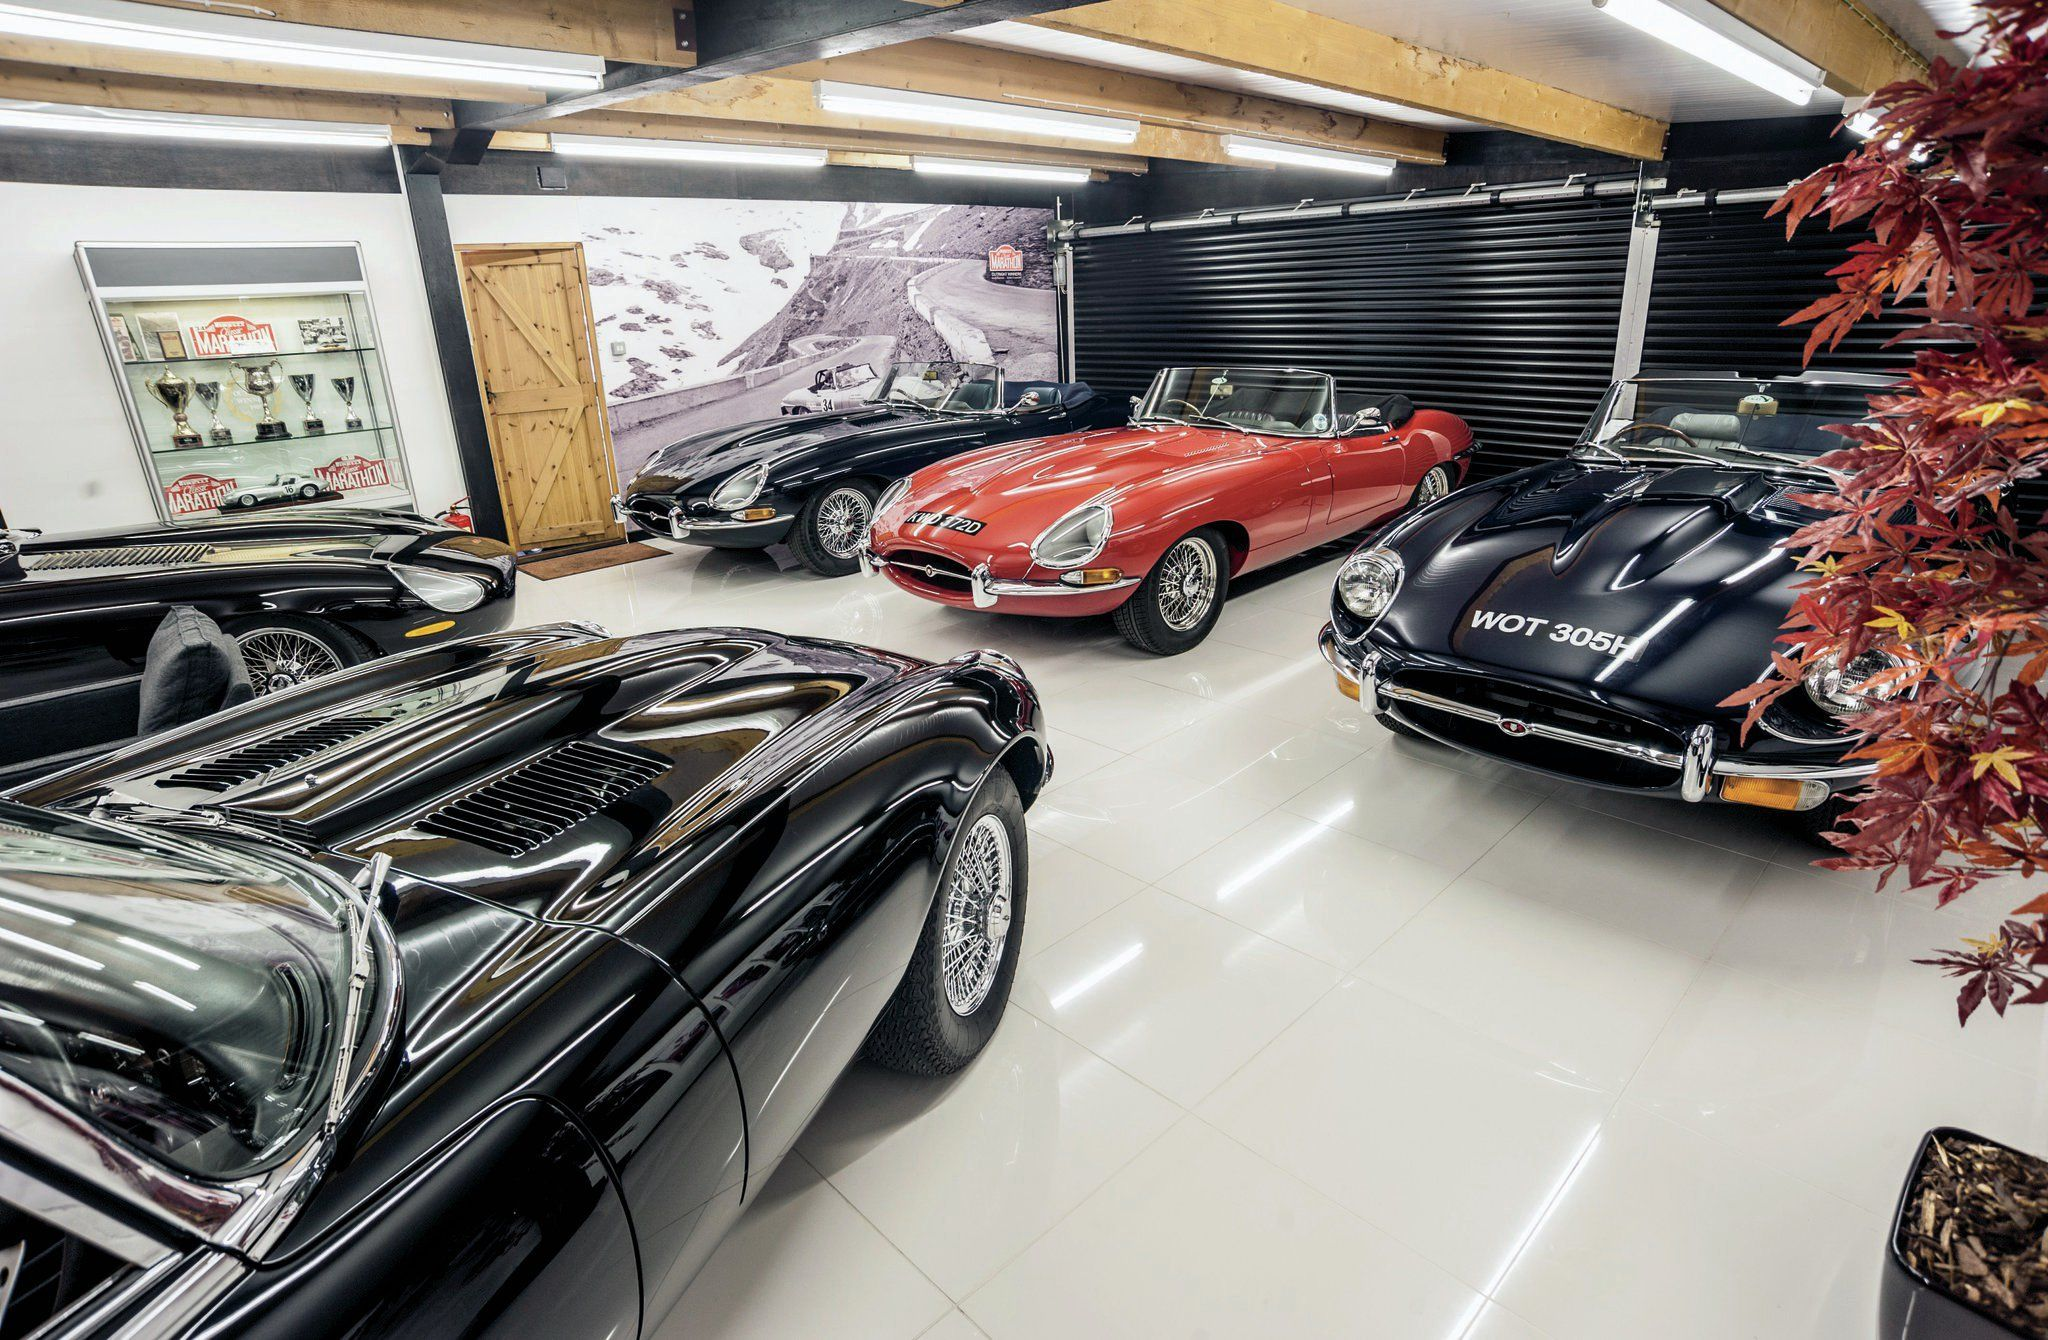 The showroom a Eagle. Every car is, in reality, a fully restored Jaguar. (Picture courtesy of superstreetonline.com)